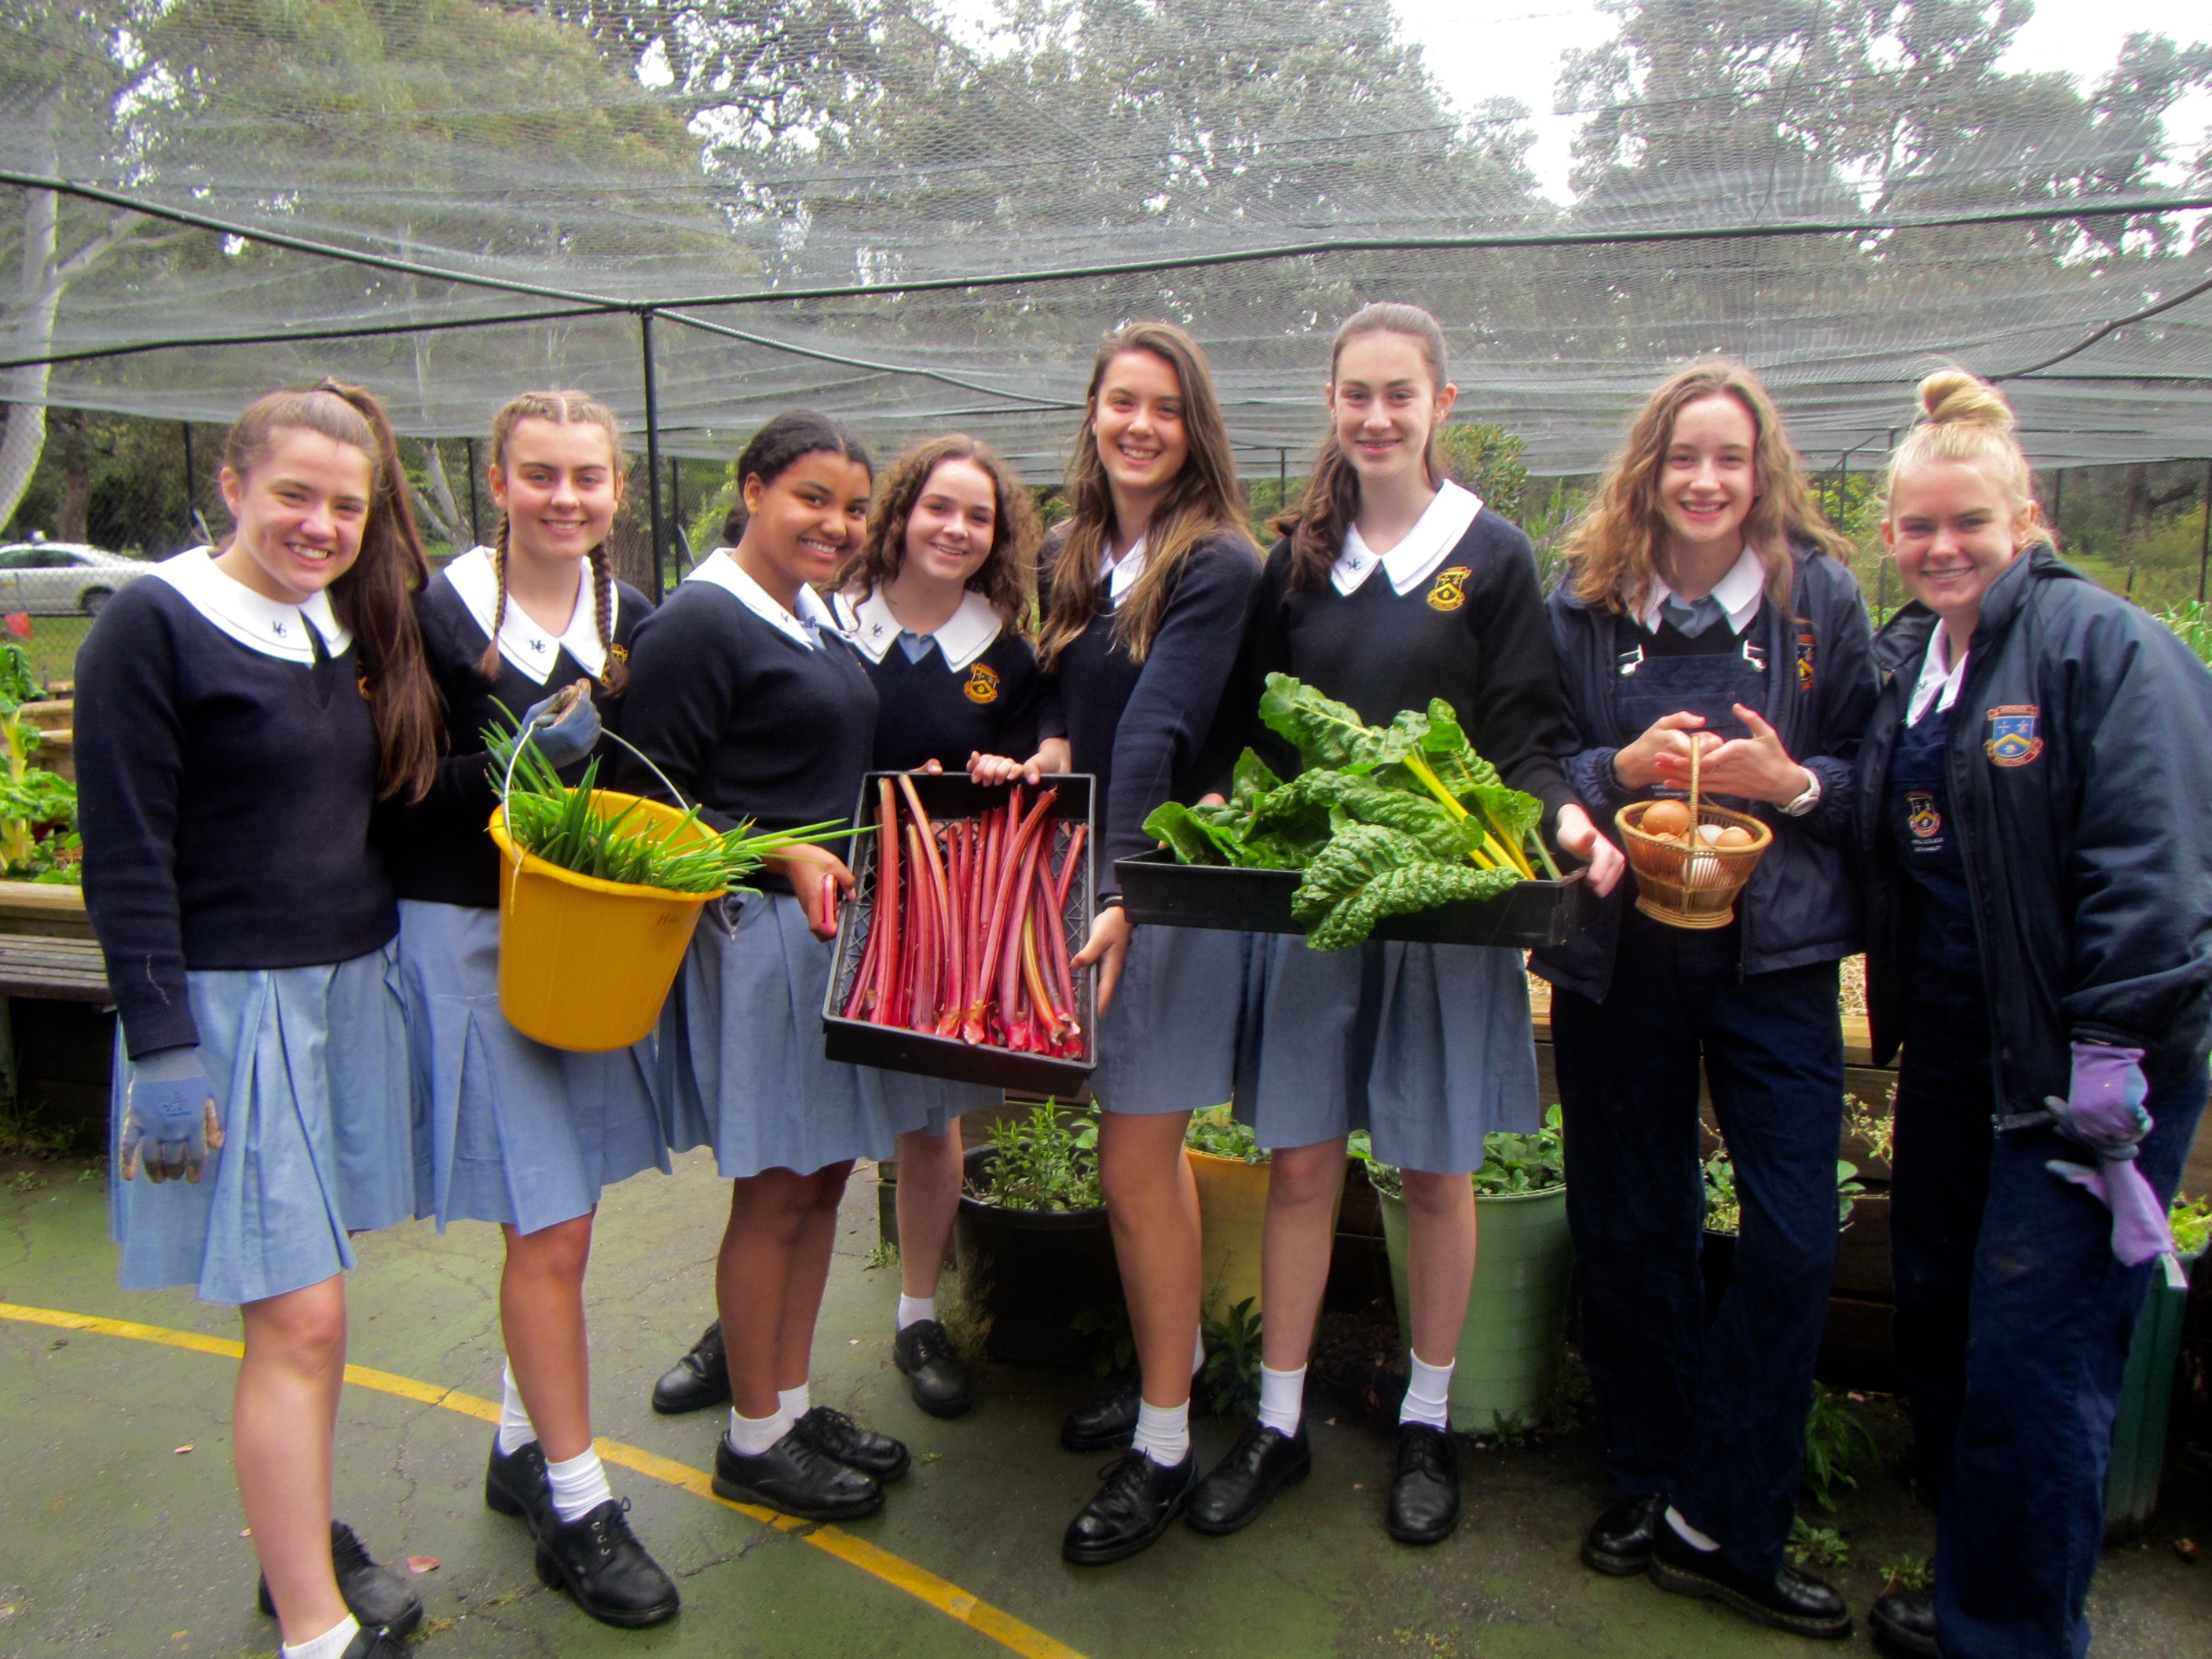 A group of students showing off the produce from their school garden